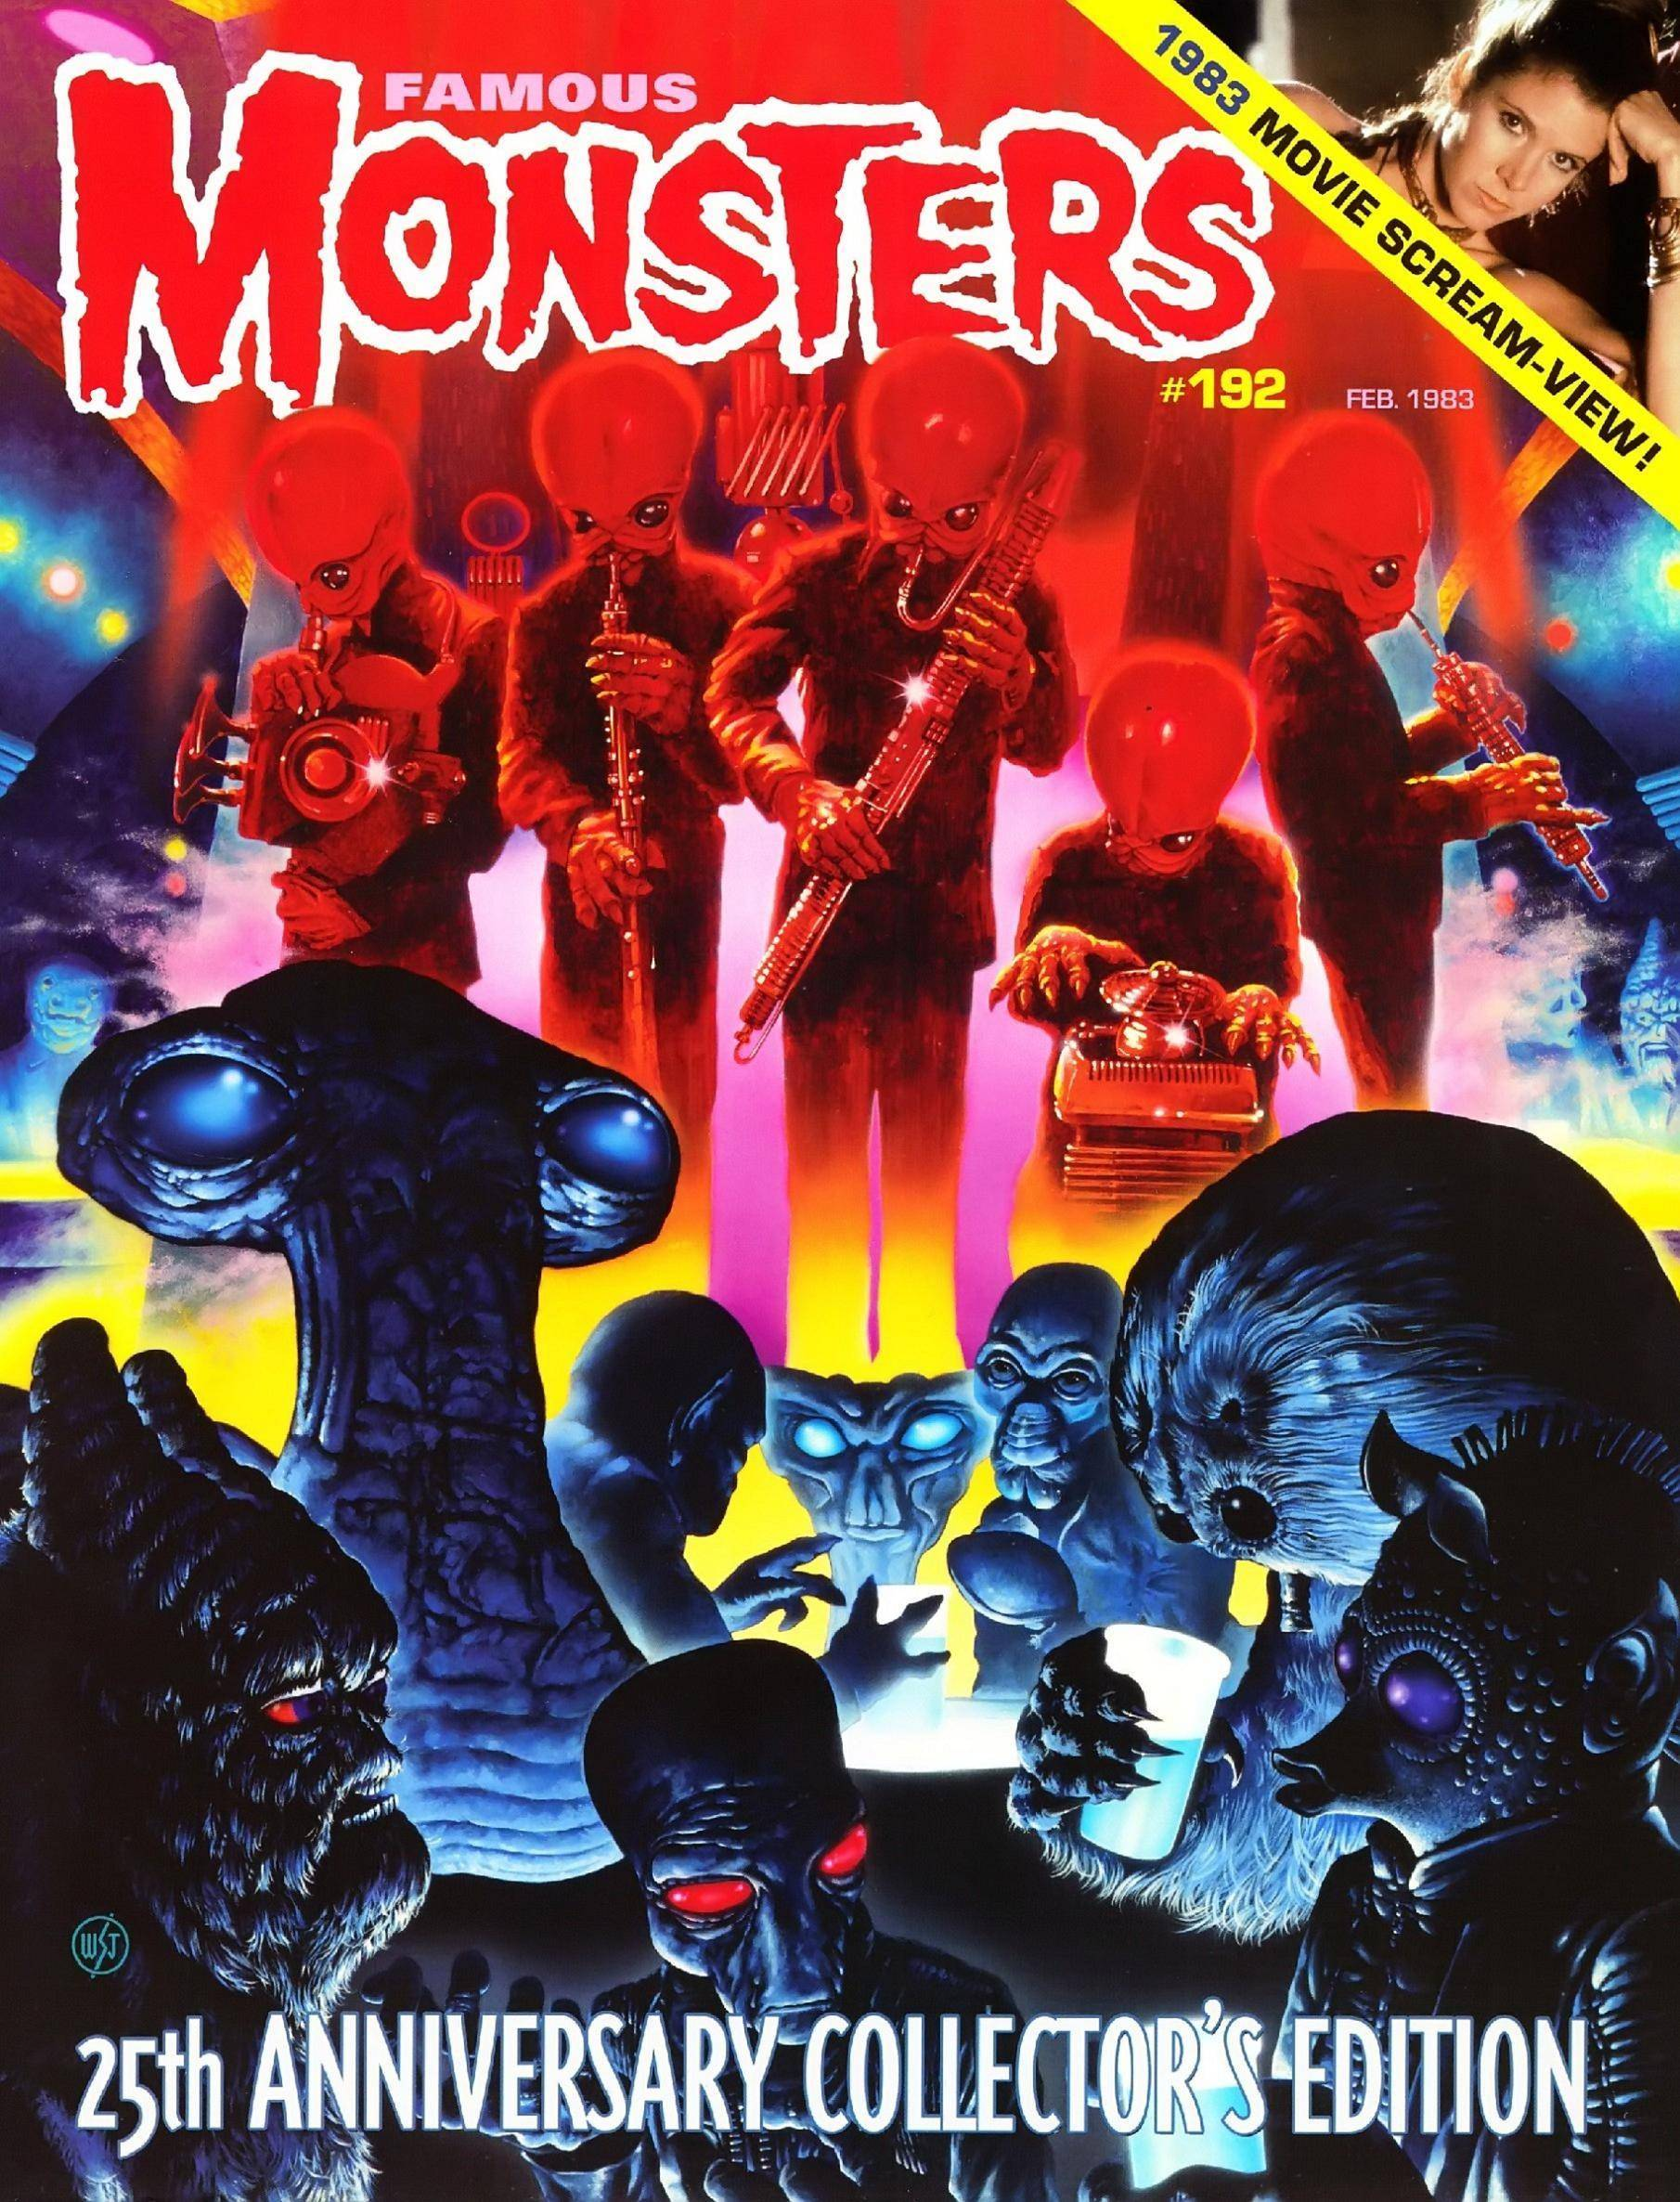 Famous Monsters of Filmland 192 1983 reprint 2012